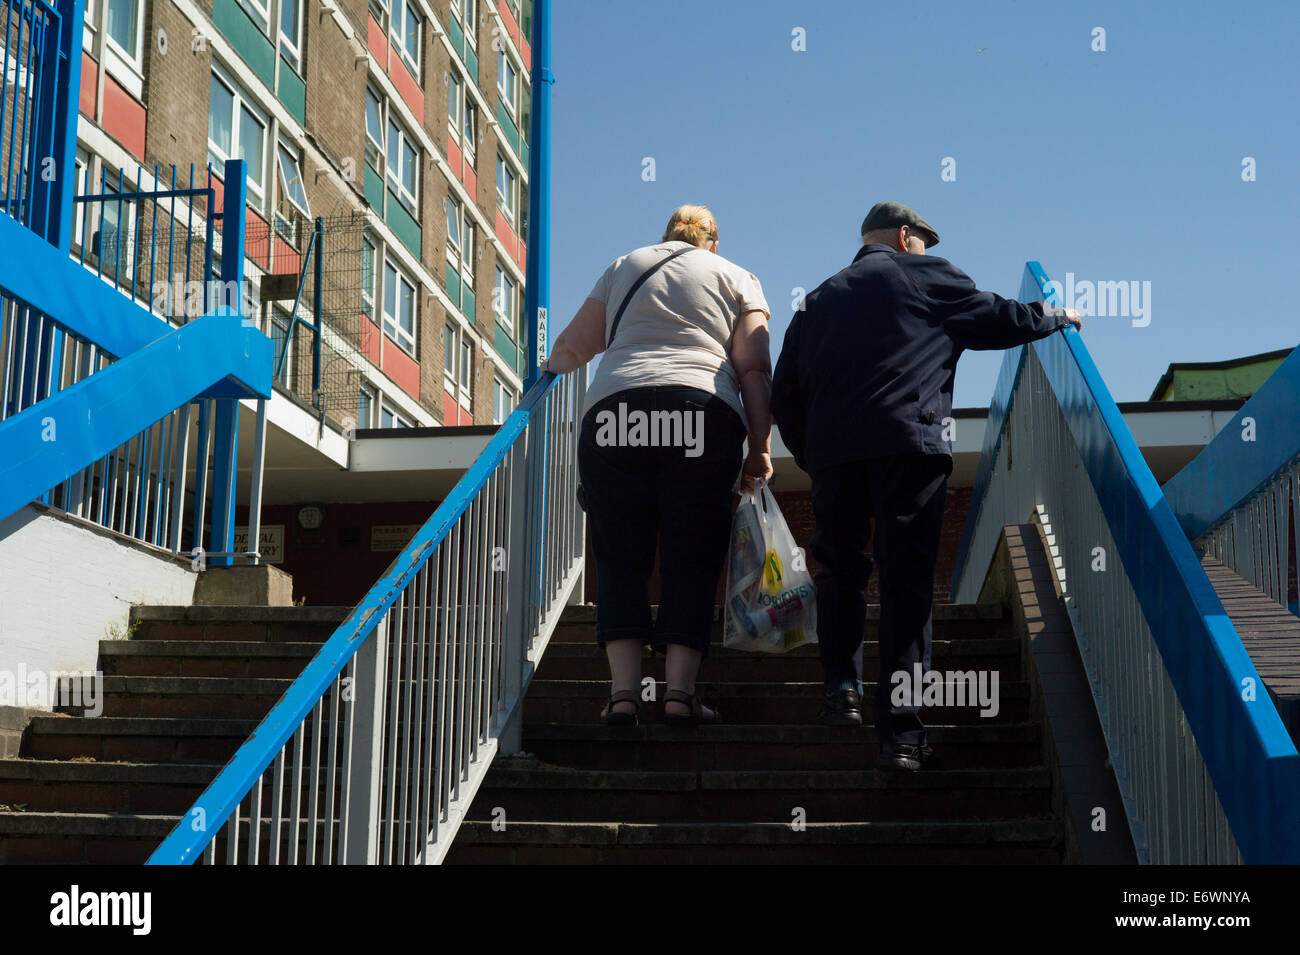 Couple on steps in housing estate. - Stock Image